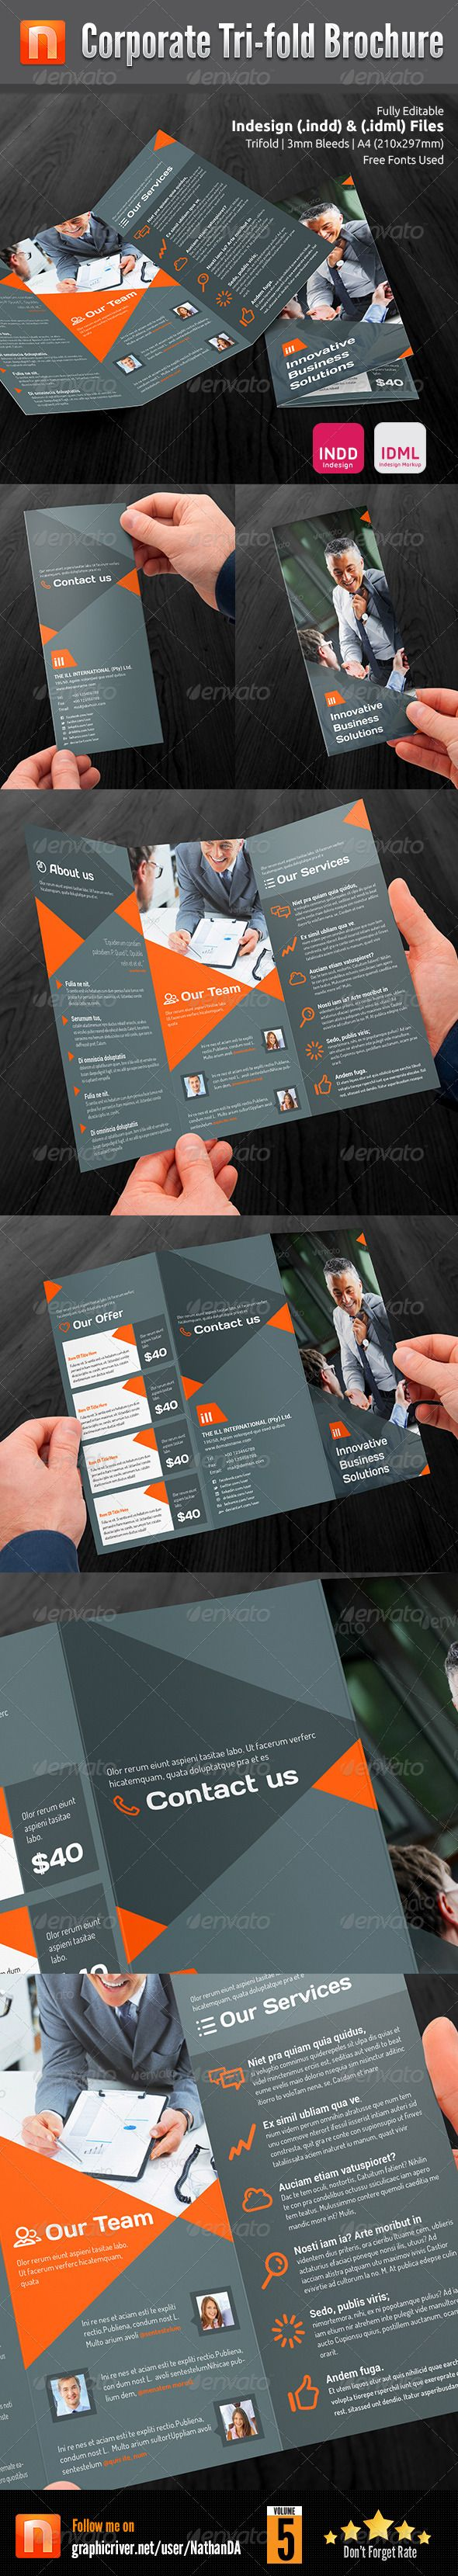 Corporate Tri-fold Brochure V5  #GraphicRiver         Corporate tri-fold brochure.